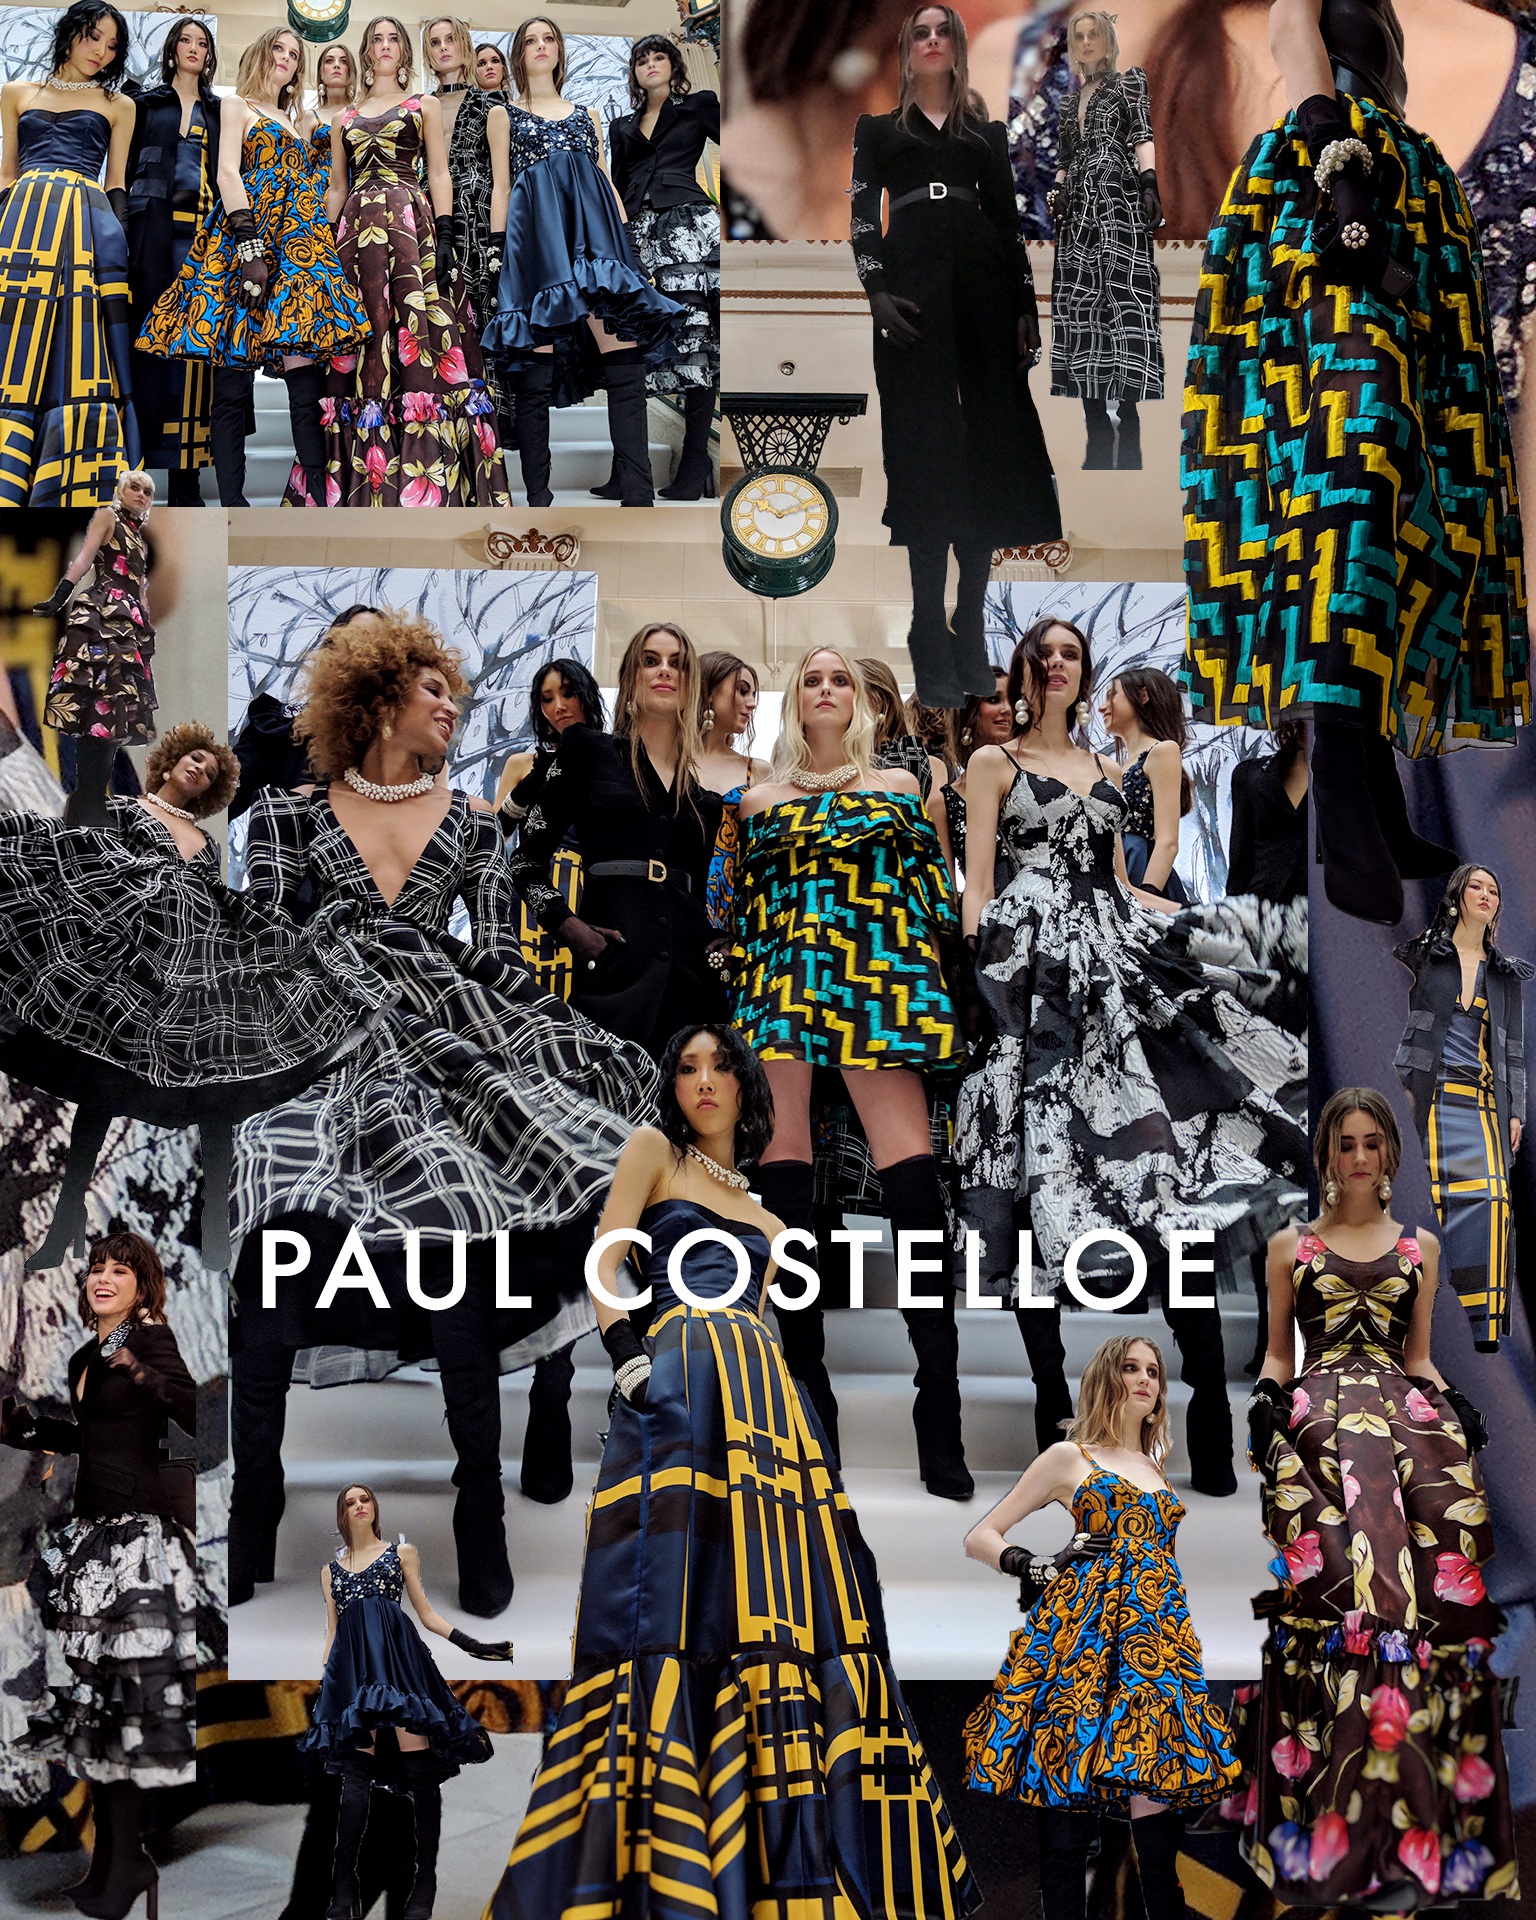 Paul Costelloe fashion